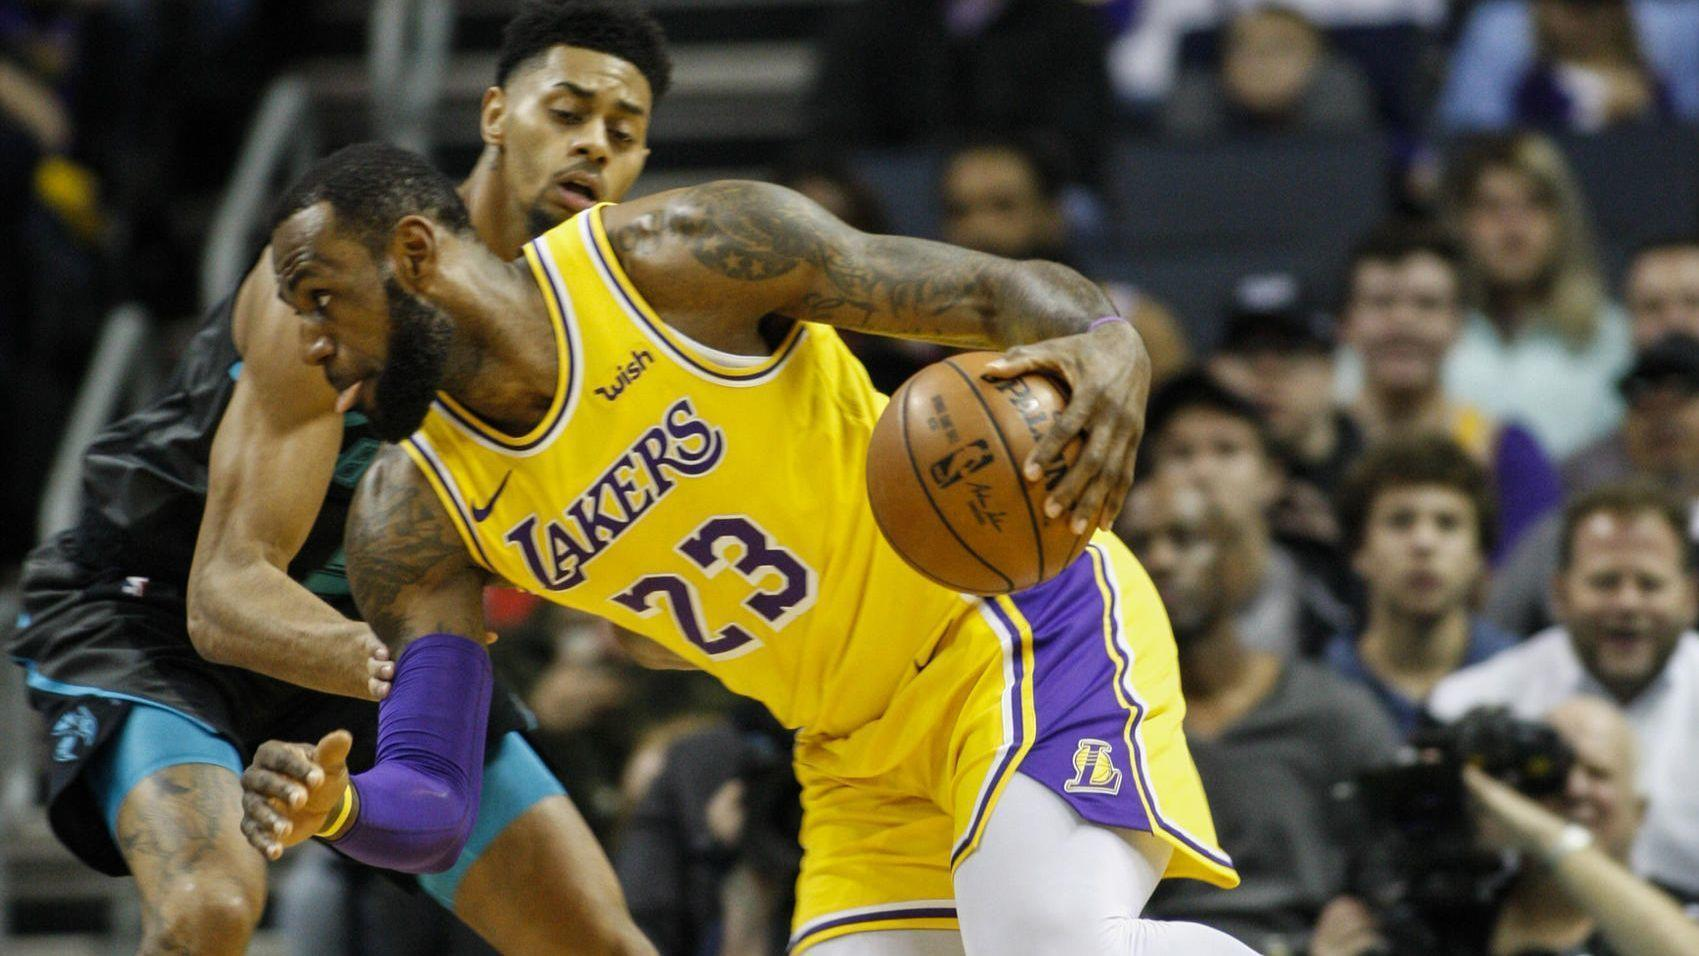 Lakers make history in 128-100 victory at Charlotte